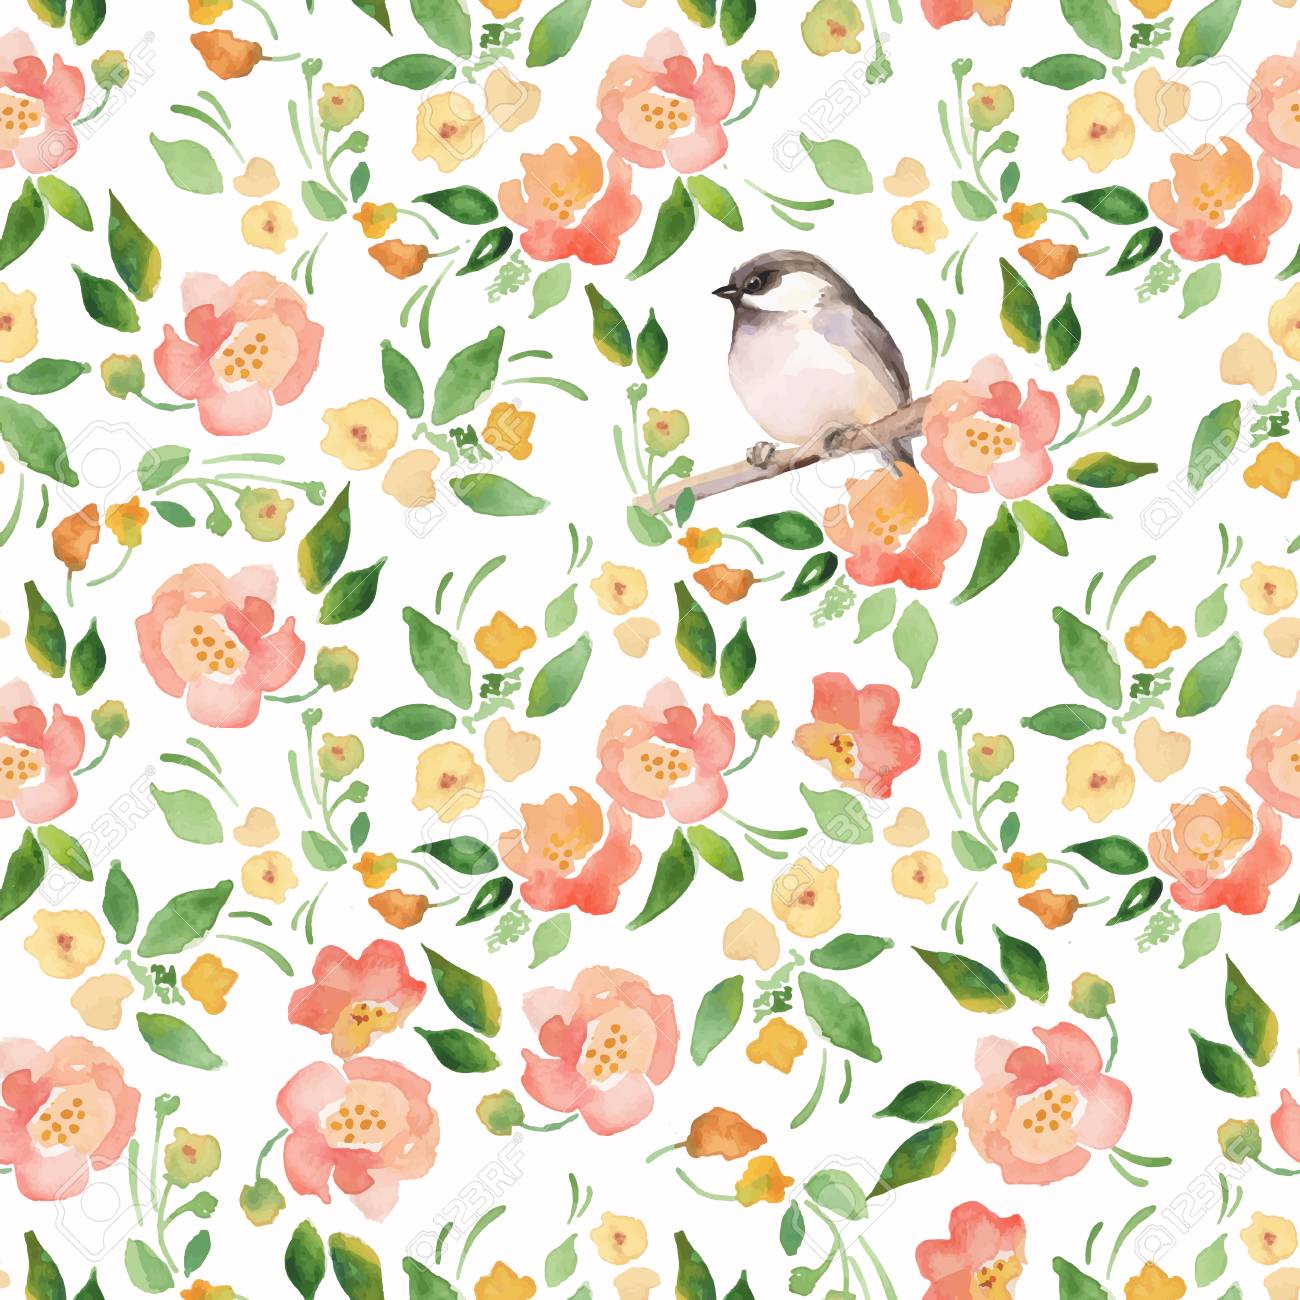 watercolor floral background with a cut bird seamless vector